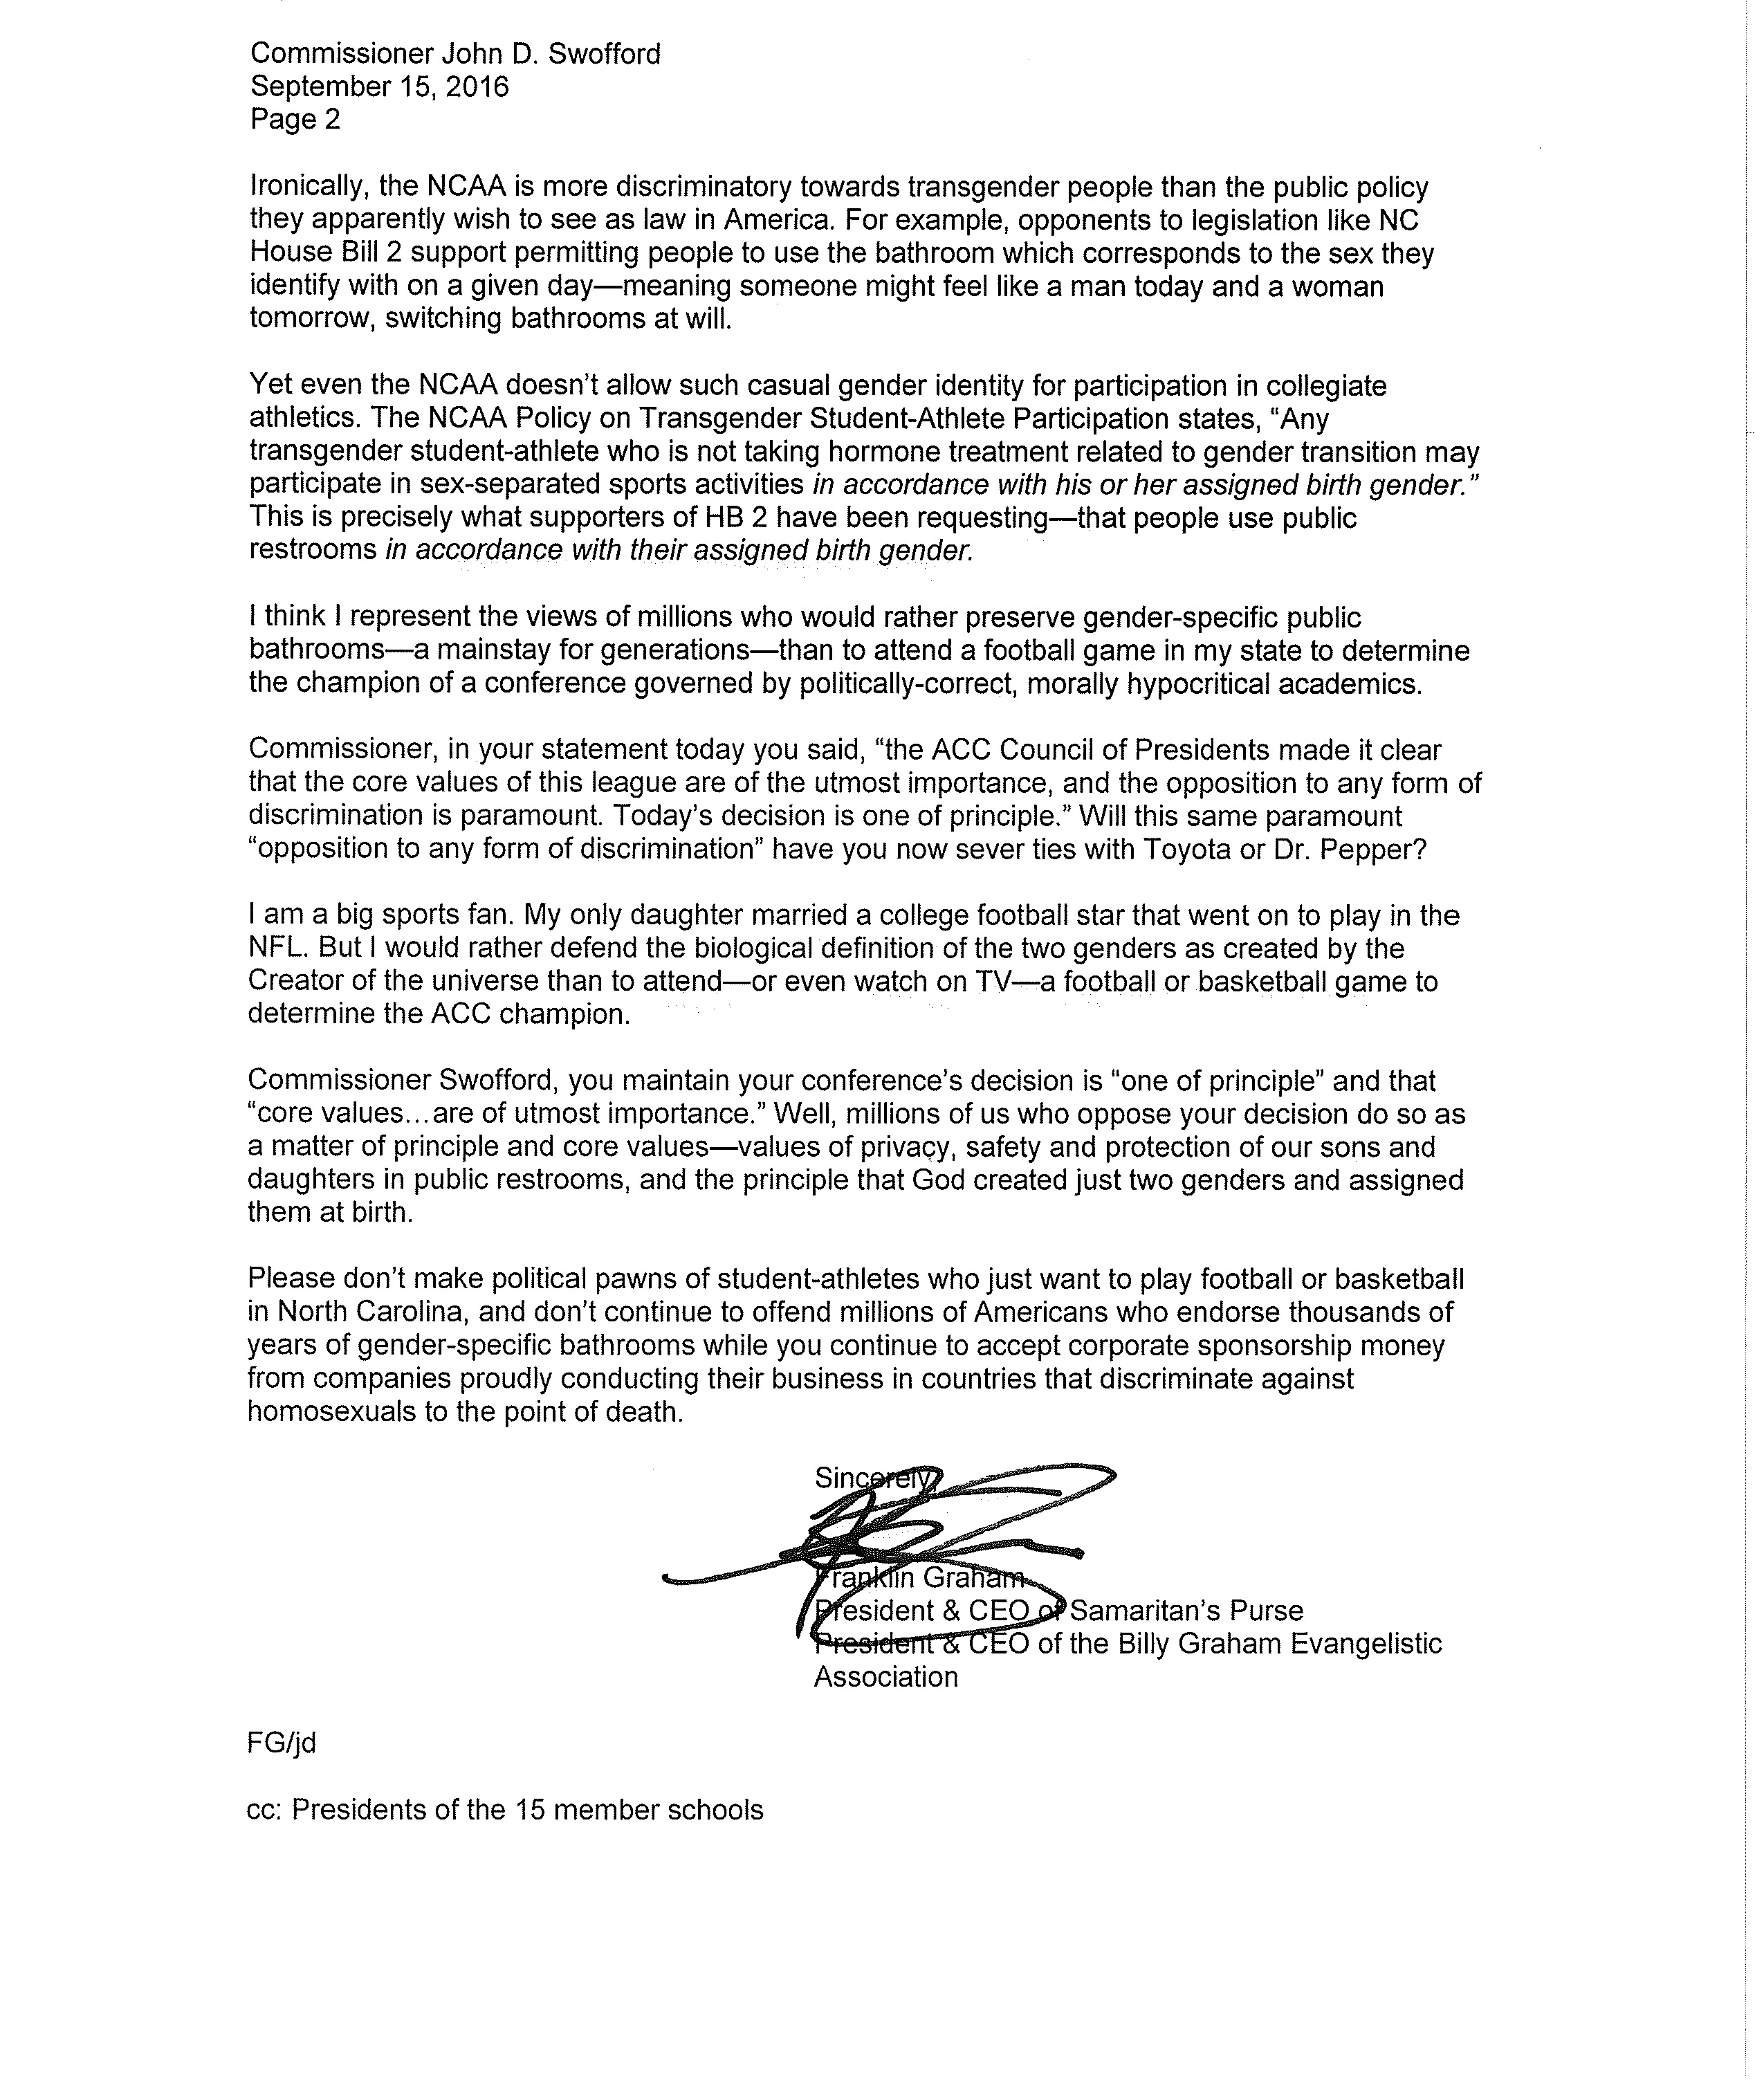 FG letter to ACC Commish page 2